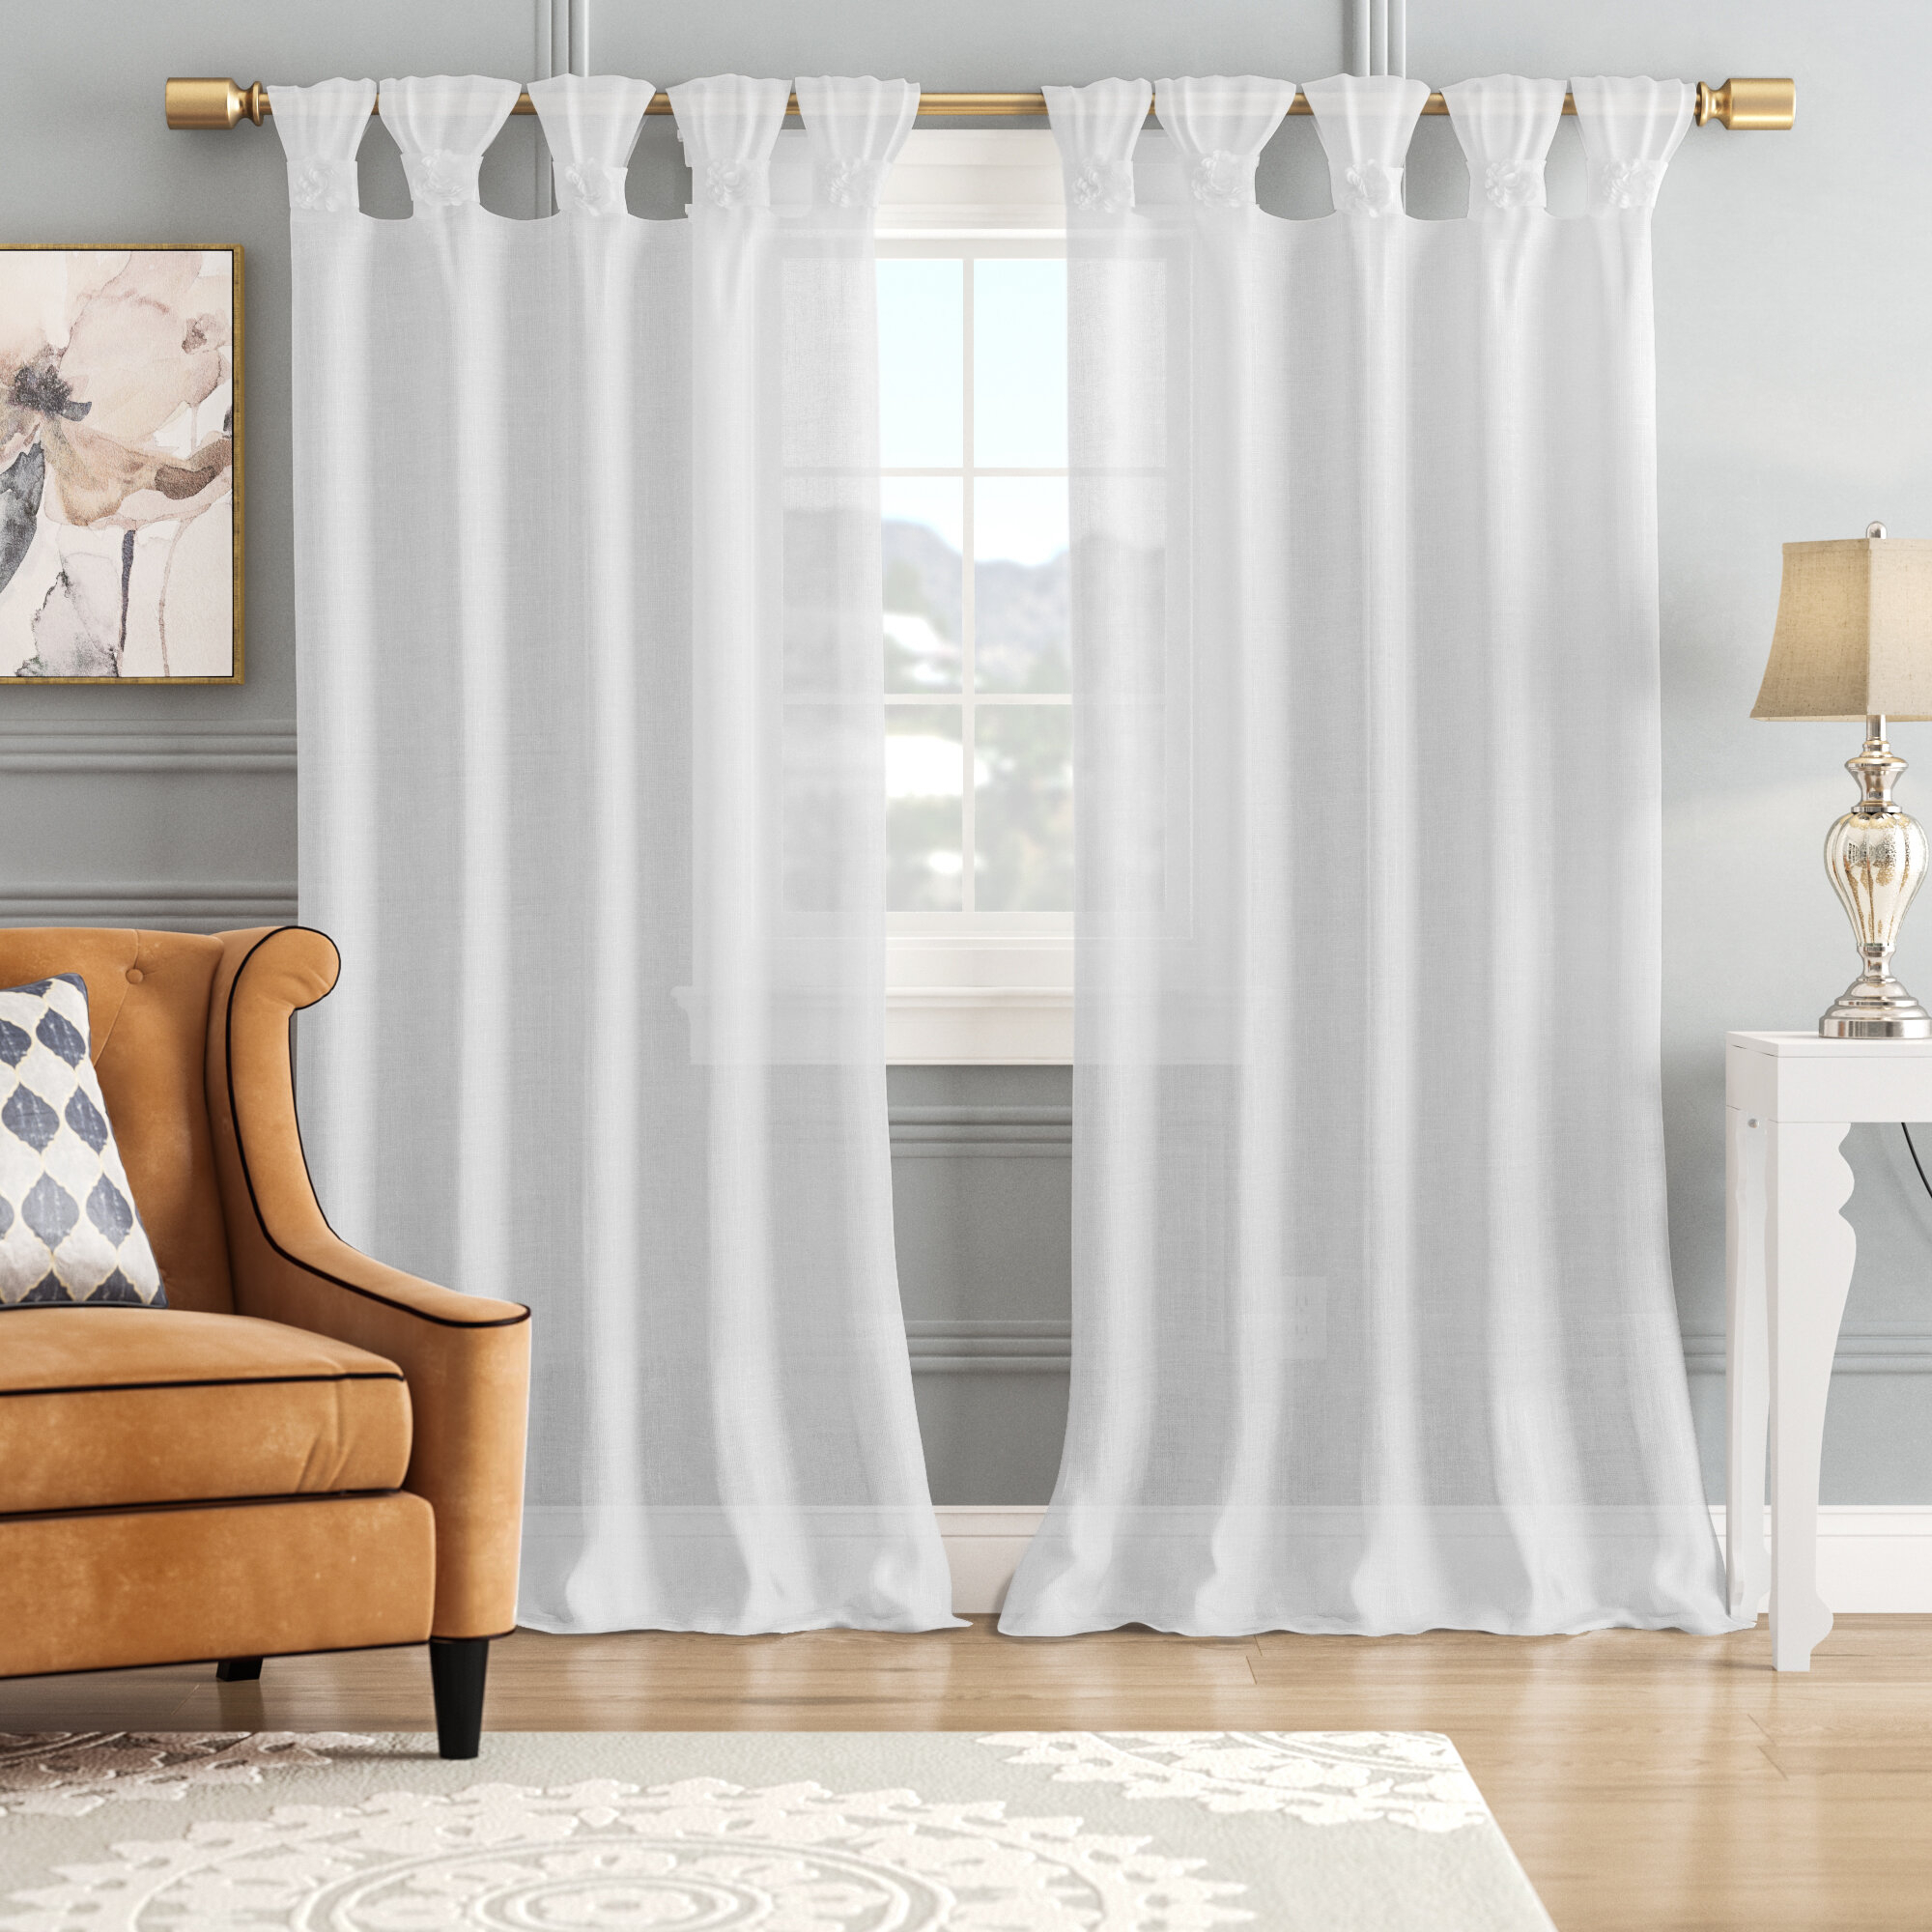 Mysliwiec Floral Twist Solid Semi Sheer Tab Top Single Curtain Panel Throughout Tab Top Sheer Single Curtain Panels (View 4 of 30)